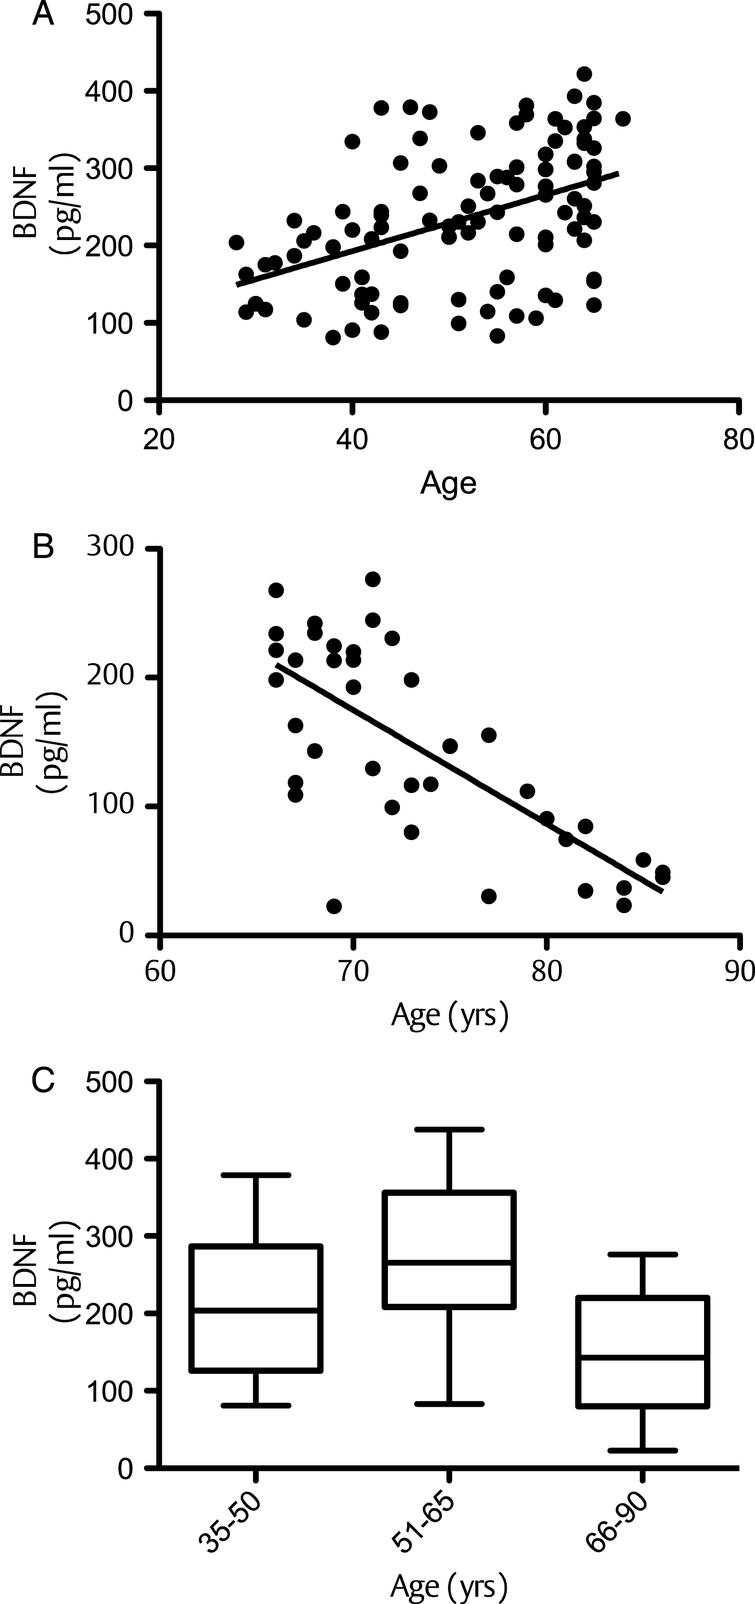 Correlation between serum BDNF and age: (A) correlation between BDNF and age for individuals up to 65 years; (B) BDNF and age ages 65–90 years; C: Whisker Plot showing tertiles of age against serum BDNF levels at baseline. A one-way analysis of variance indicated that the 3 means were significantly different from each other (P < 0.001). Post hoc analysis, using a Bonferroni multiple comparison test, indicated that the 51–65 group had significantly higher serum BDNF levels compared to the 35–50 age group (a: p < 0.01), whilst the 66–90 group had significantly lower BDNF levels than the 35–50 group (b: p < 0.05) and the 51–65 group (c: p < 0.001). Horizontal lines within bars indicates mean level and bars indicates 25–75% distribution; Error lines indicate the min and max serum BDNF levels measured.